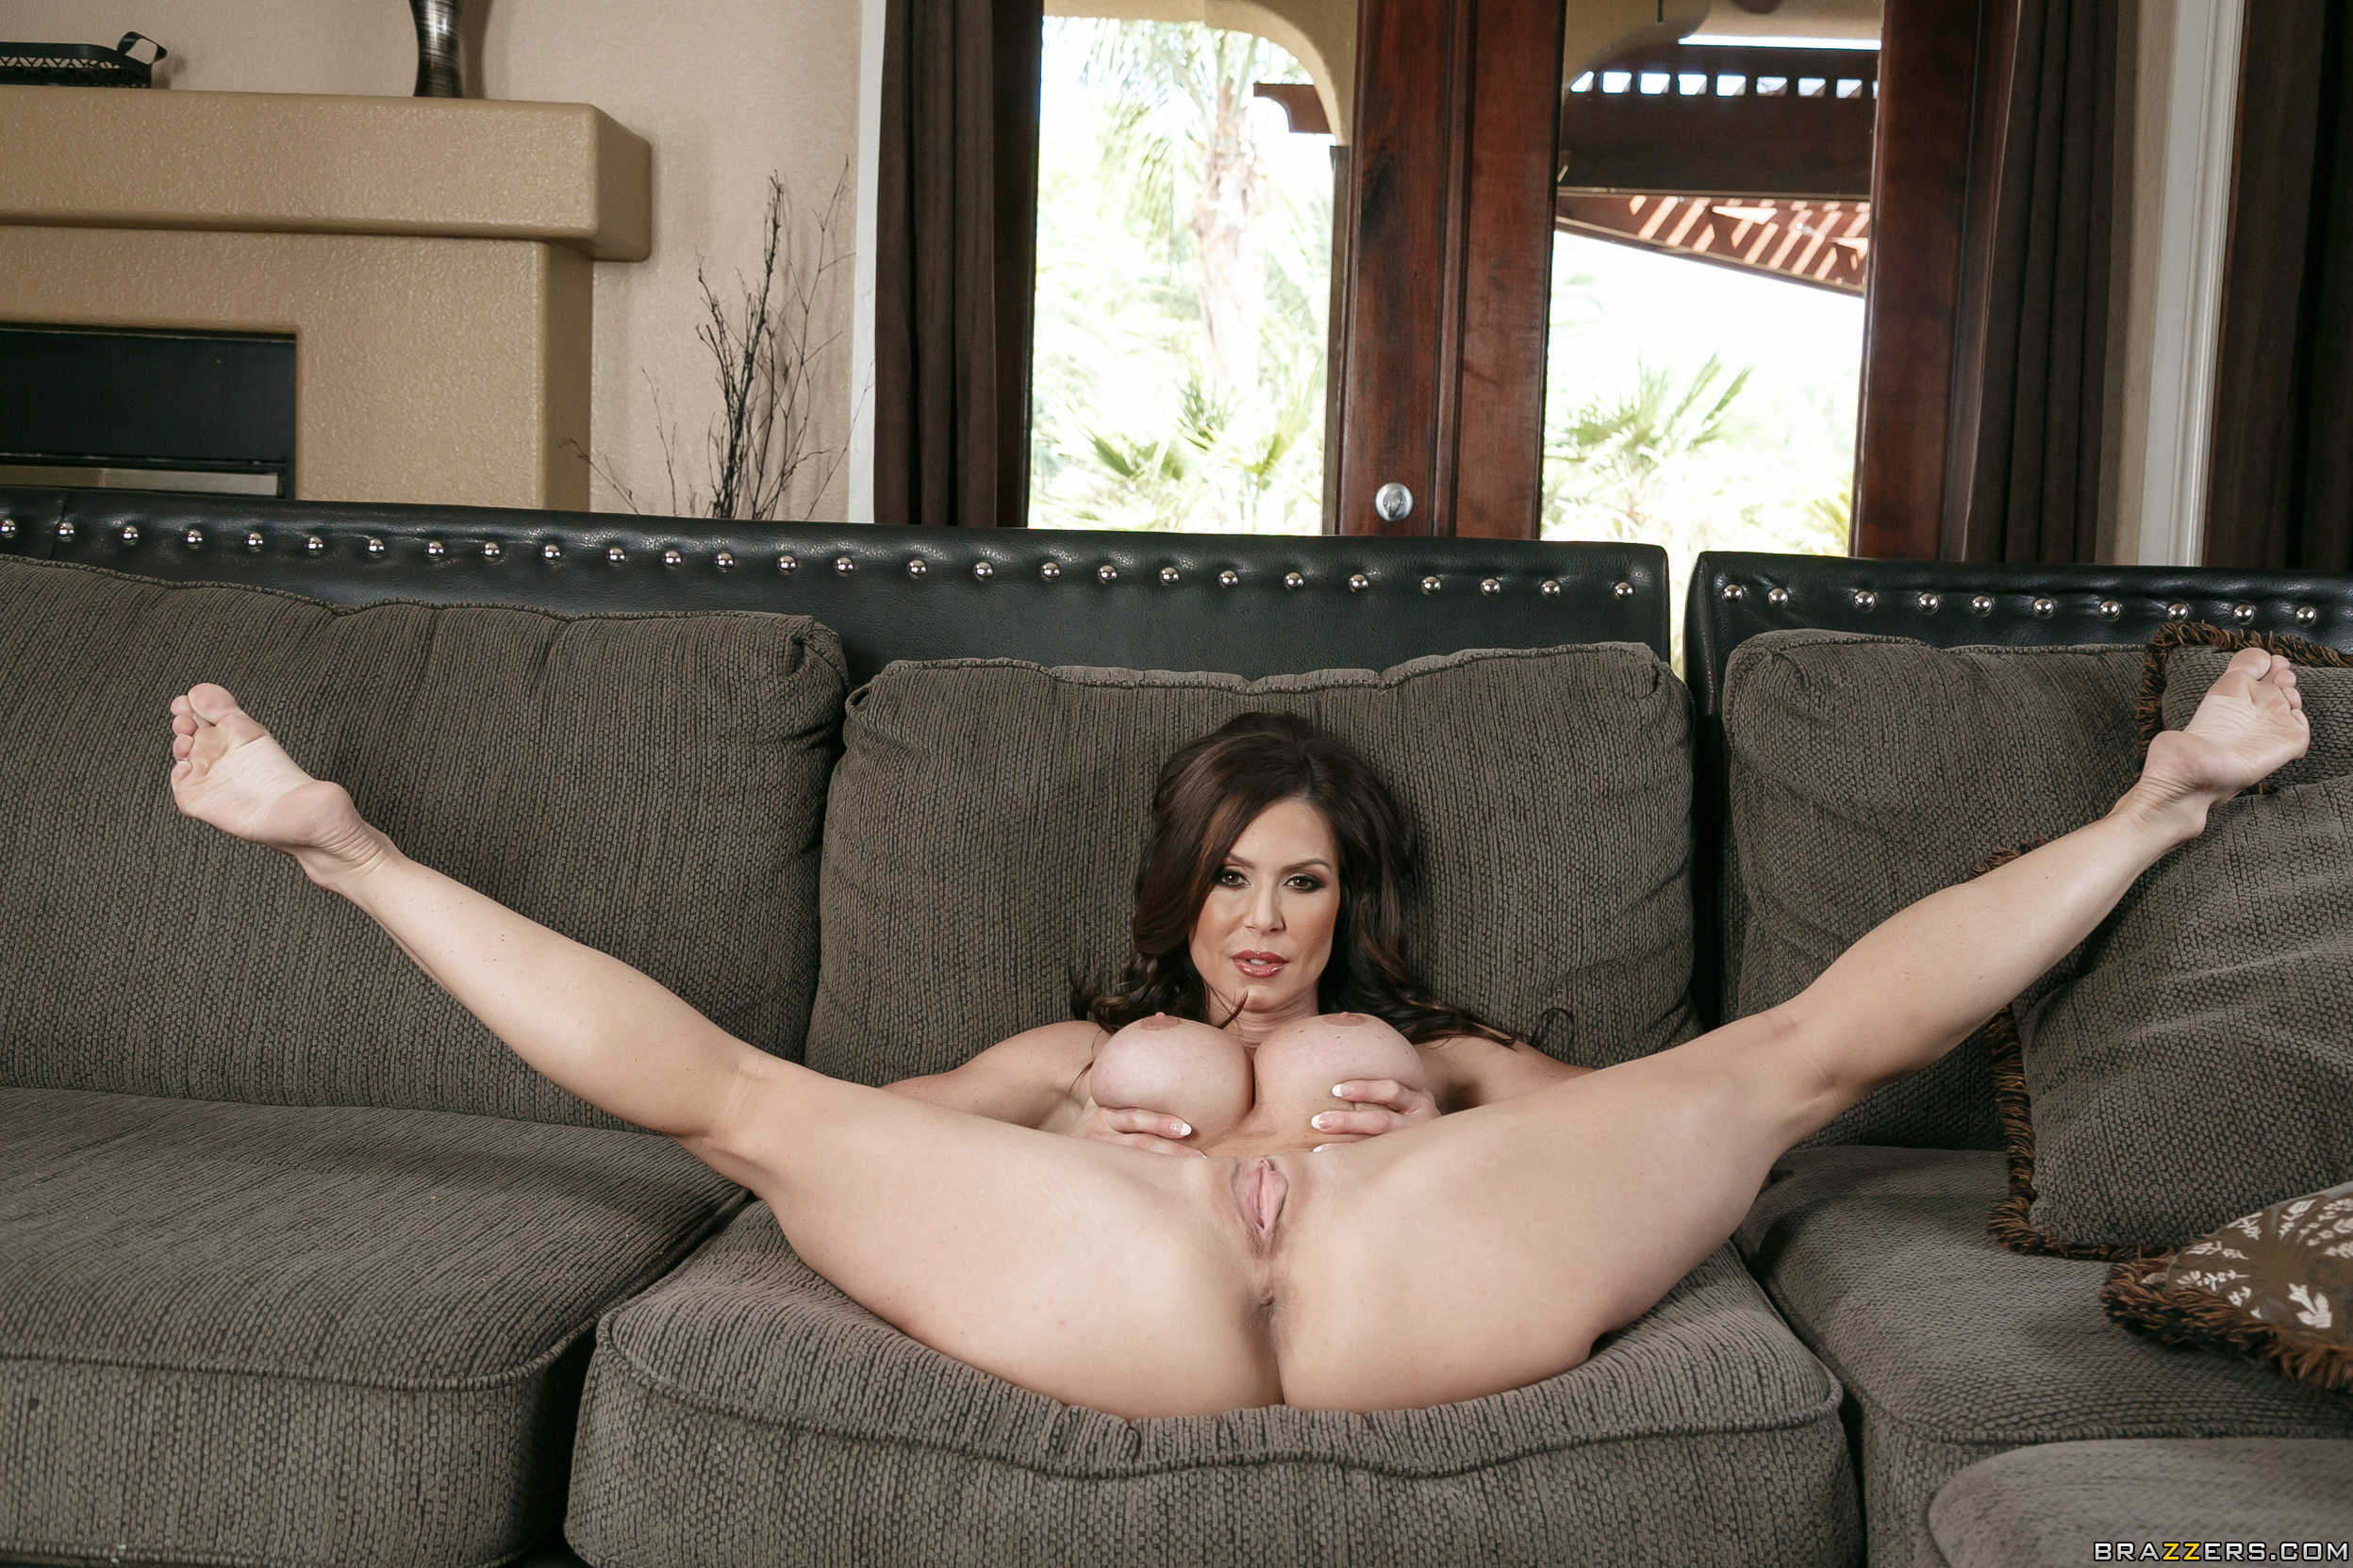 Young virgin with open legs